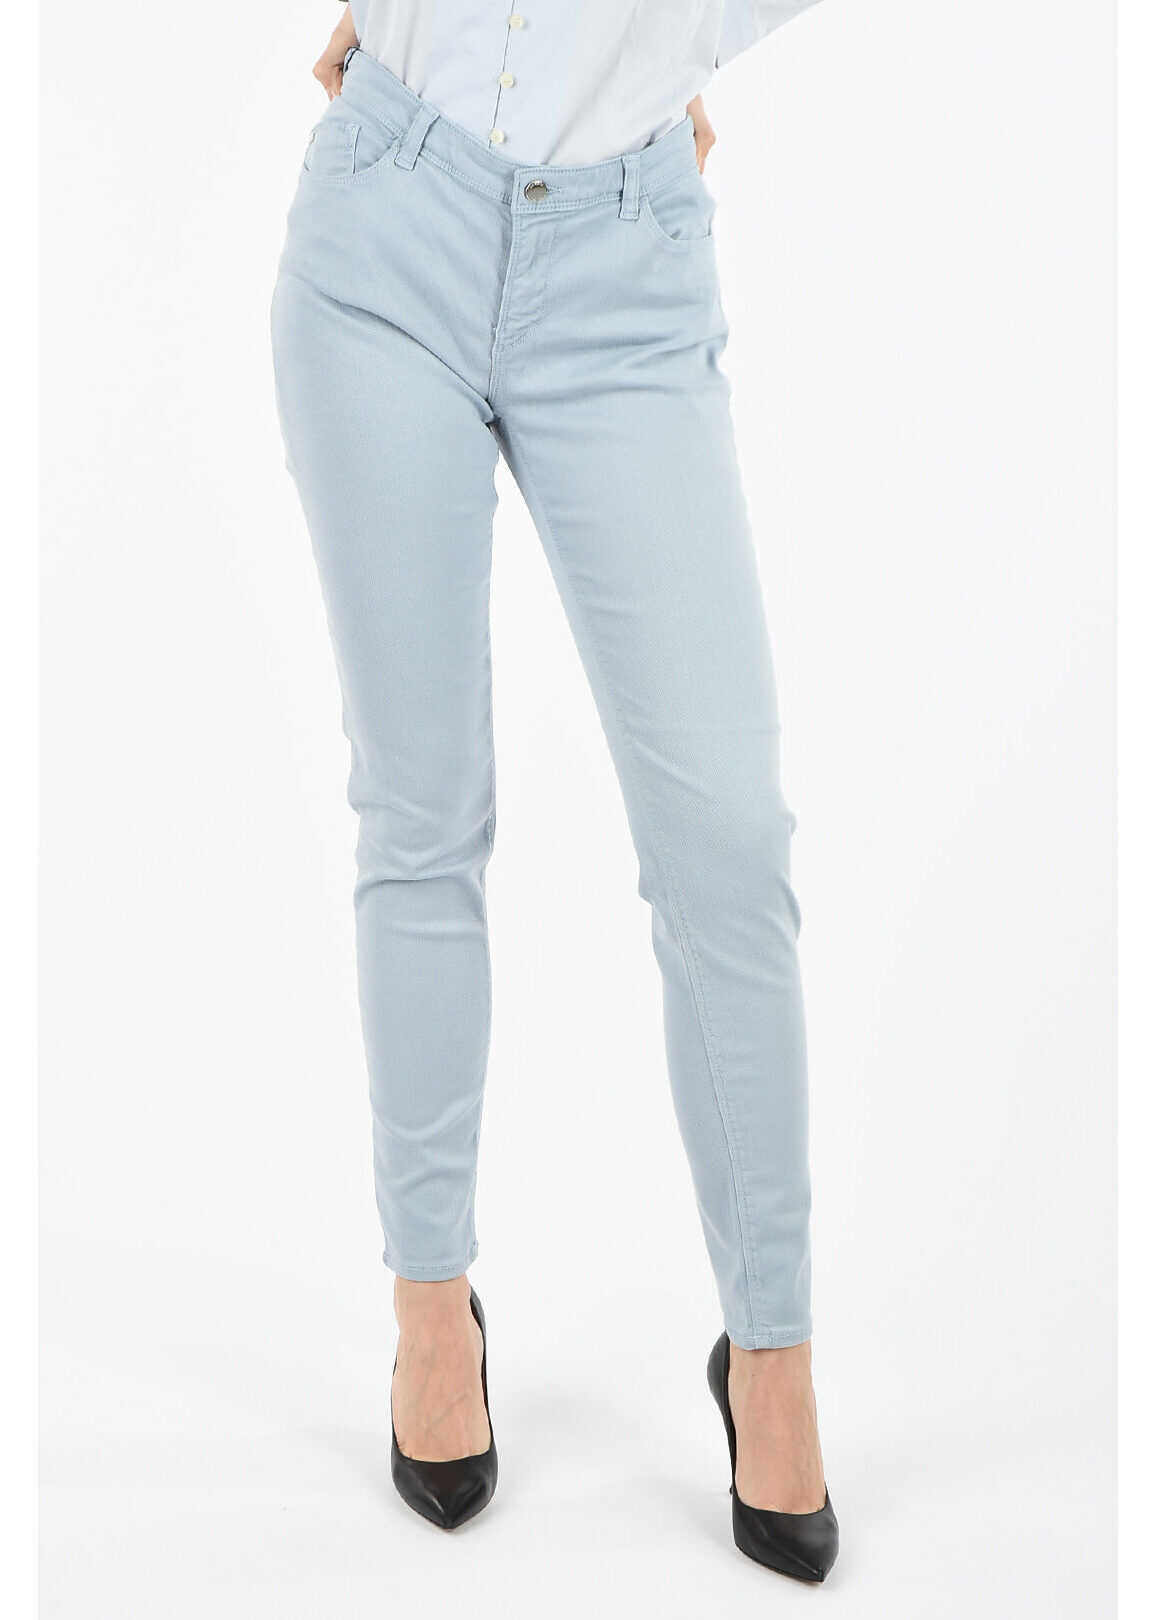 Armani ARMANI JEANS Skinny Fit Jeans LIGHT BLUE